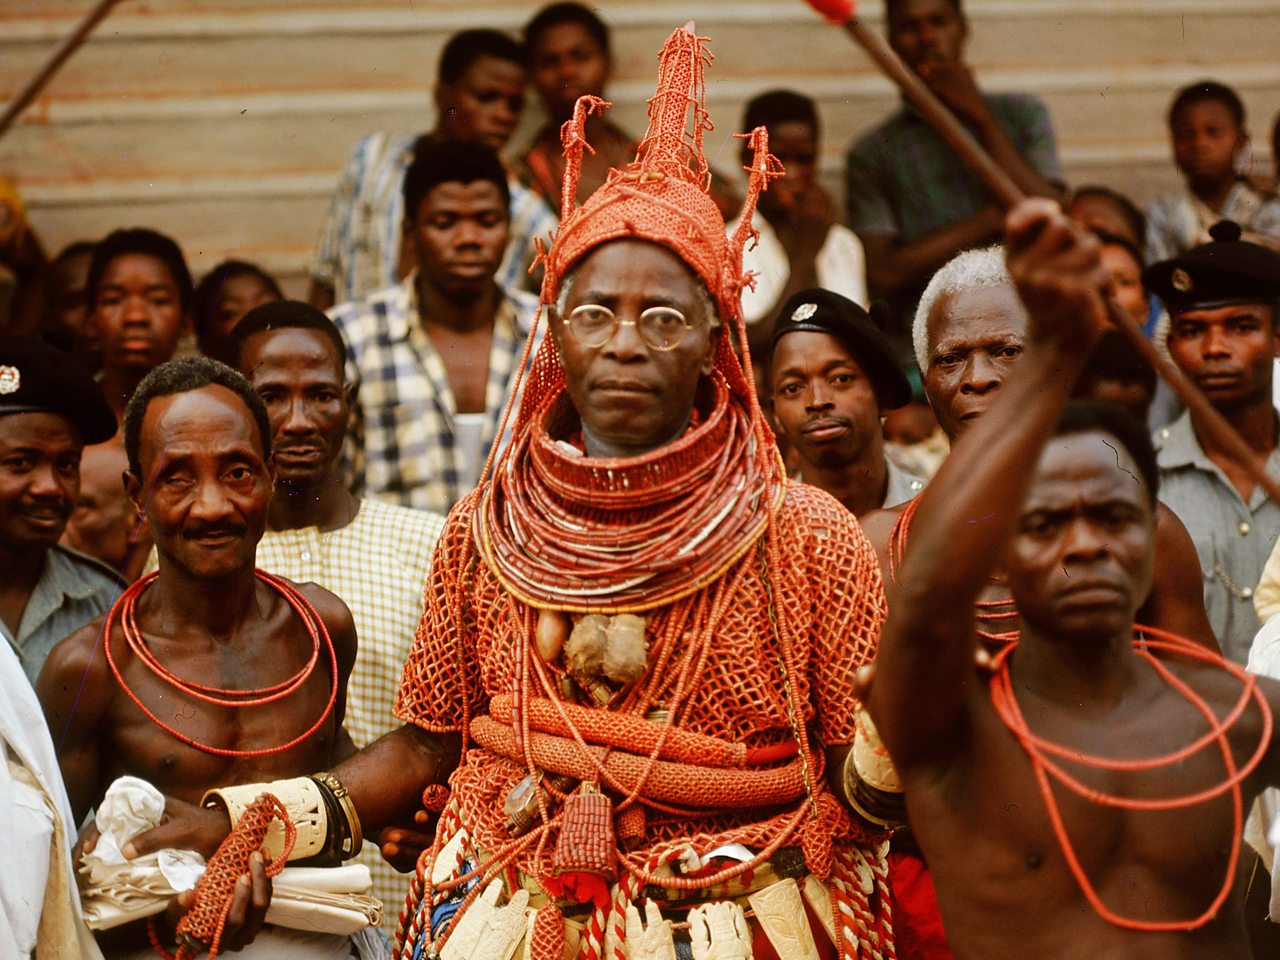 Photograph of Oba Akenzua II